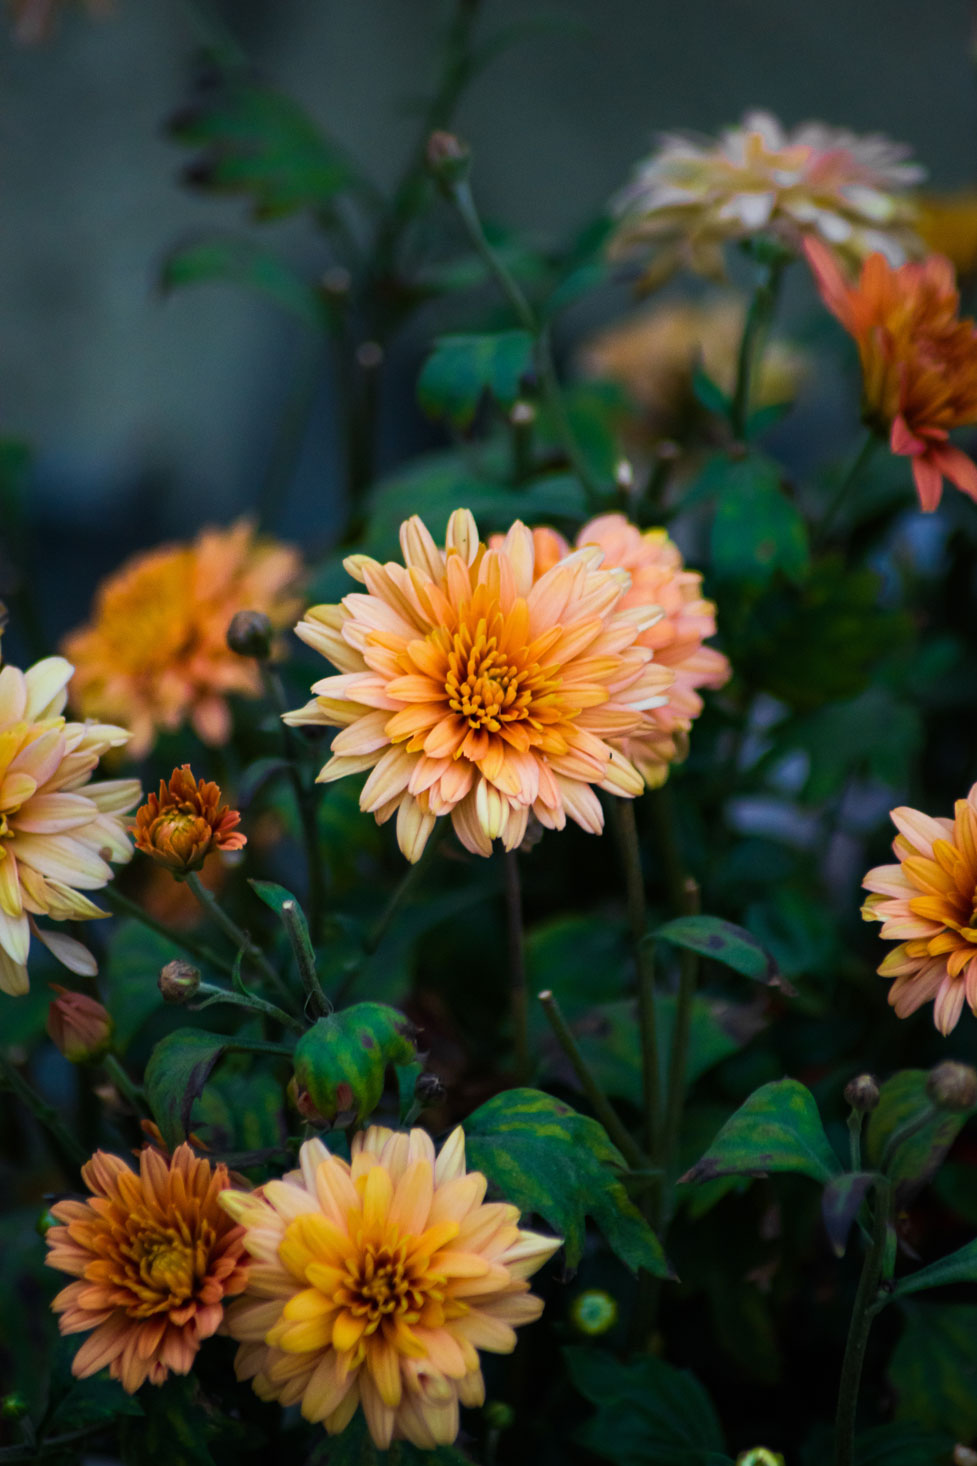 Orange Beautiful Flowers - Chrysanths